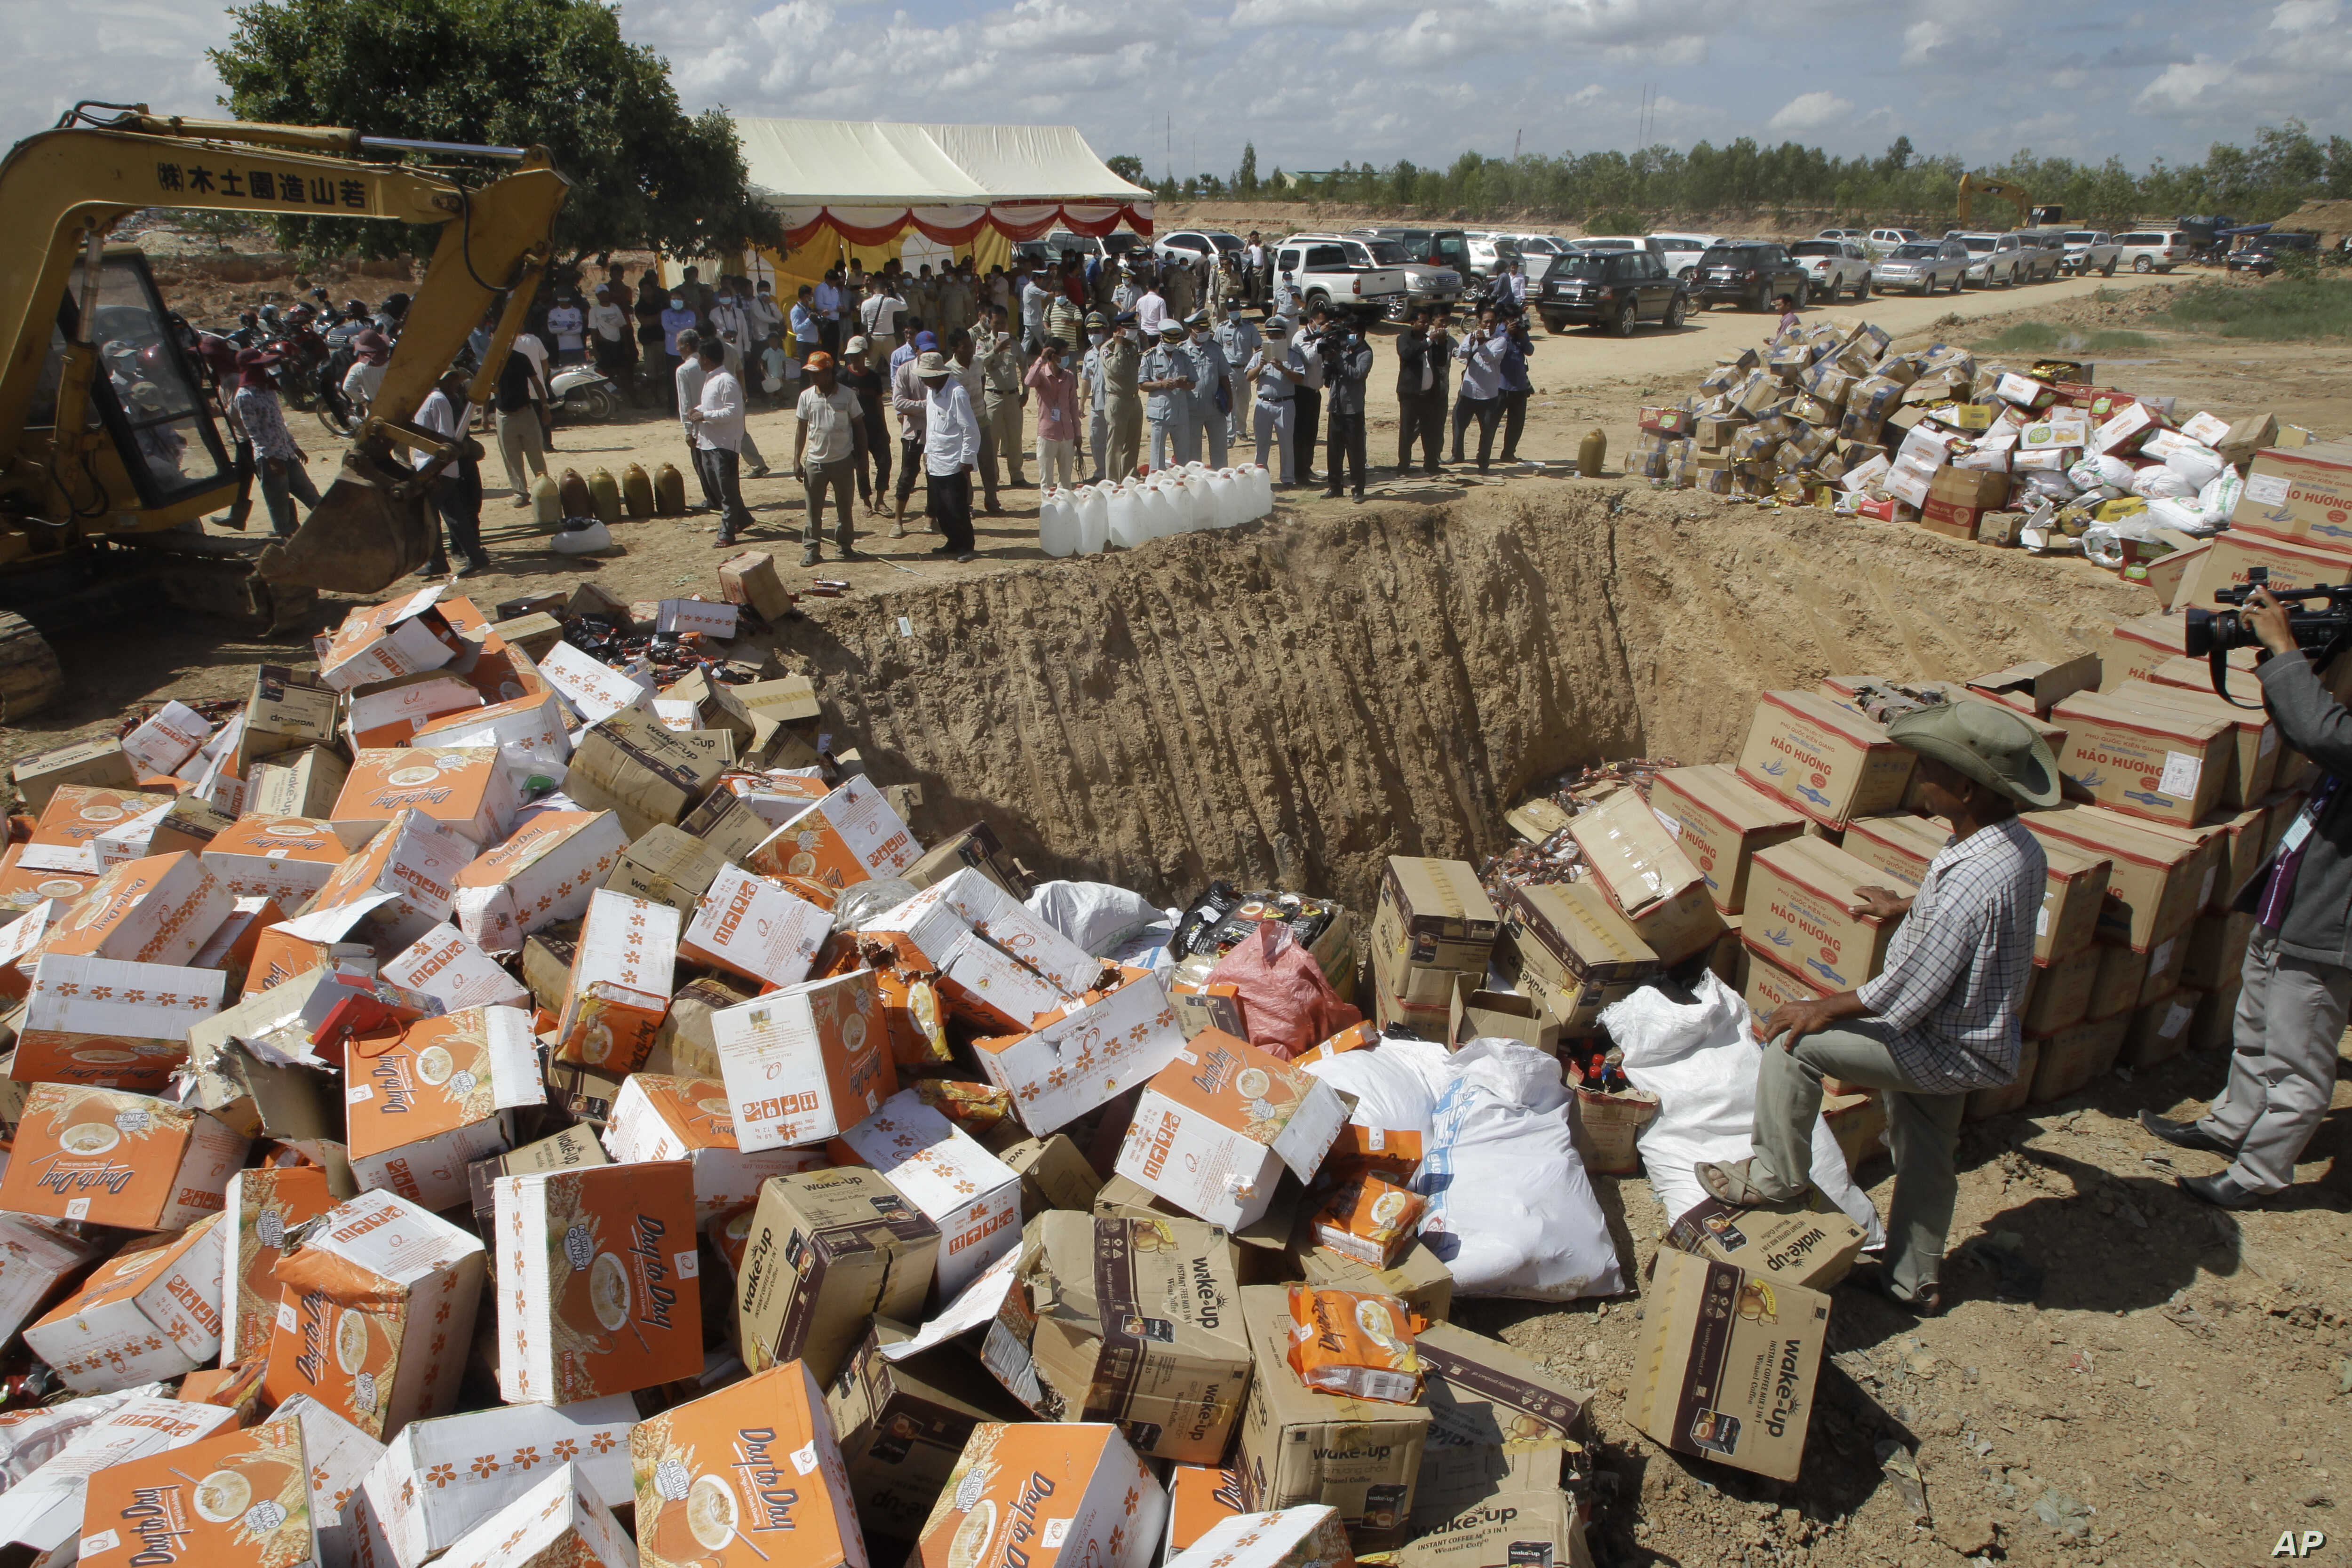 Cambodian police officers prepare to destroy counterfeit products at a dump site in Choeung Ek village on the outskirts of Phnom Penh, July 7, 2016.